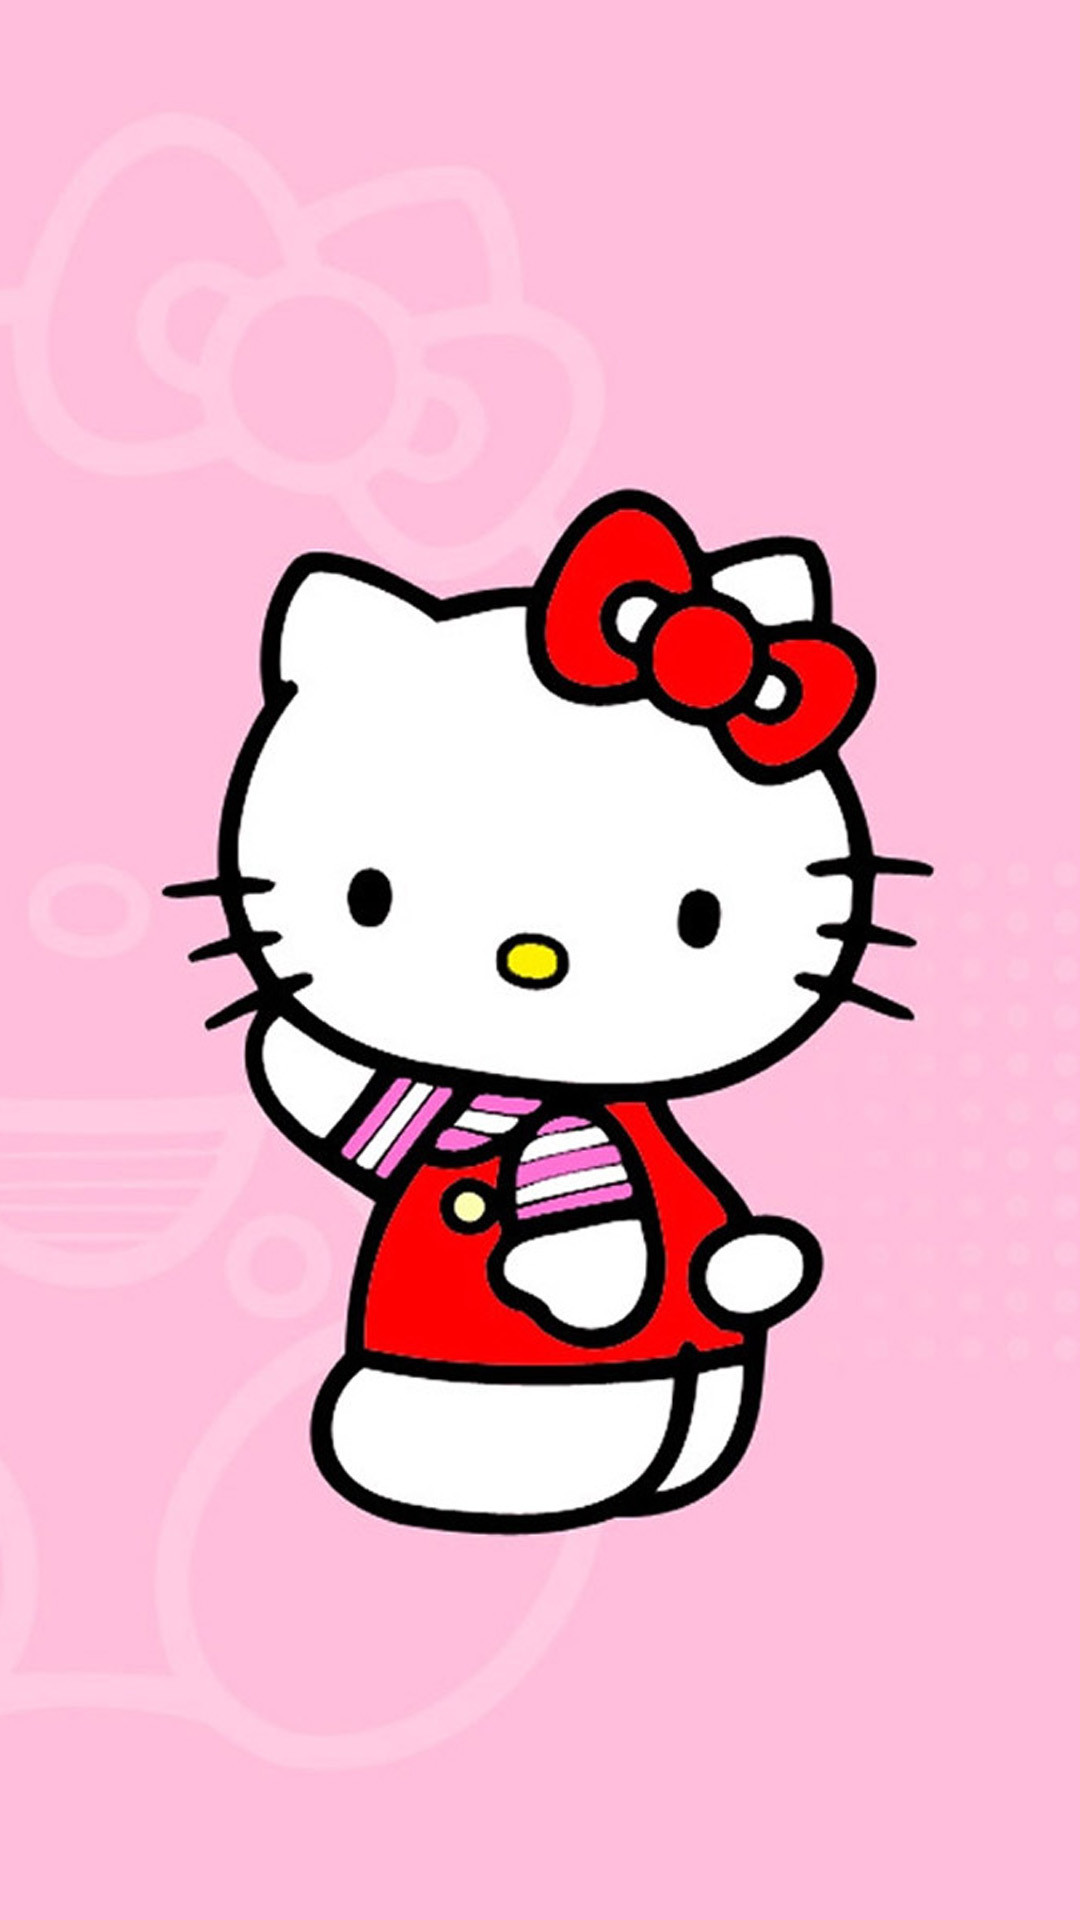 Free Download Hello Kitty Wallpaper For Iphone 72 Images